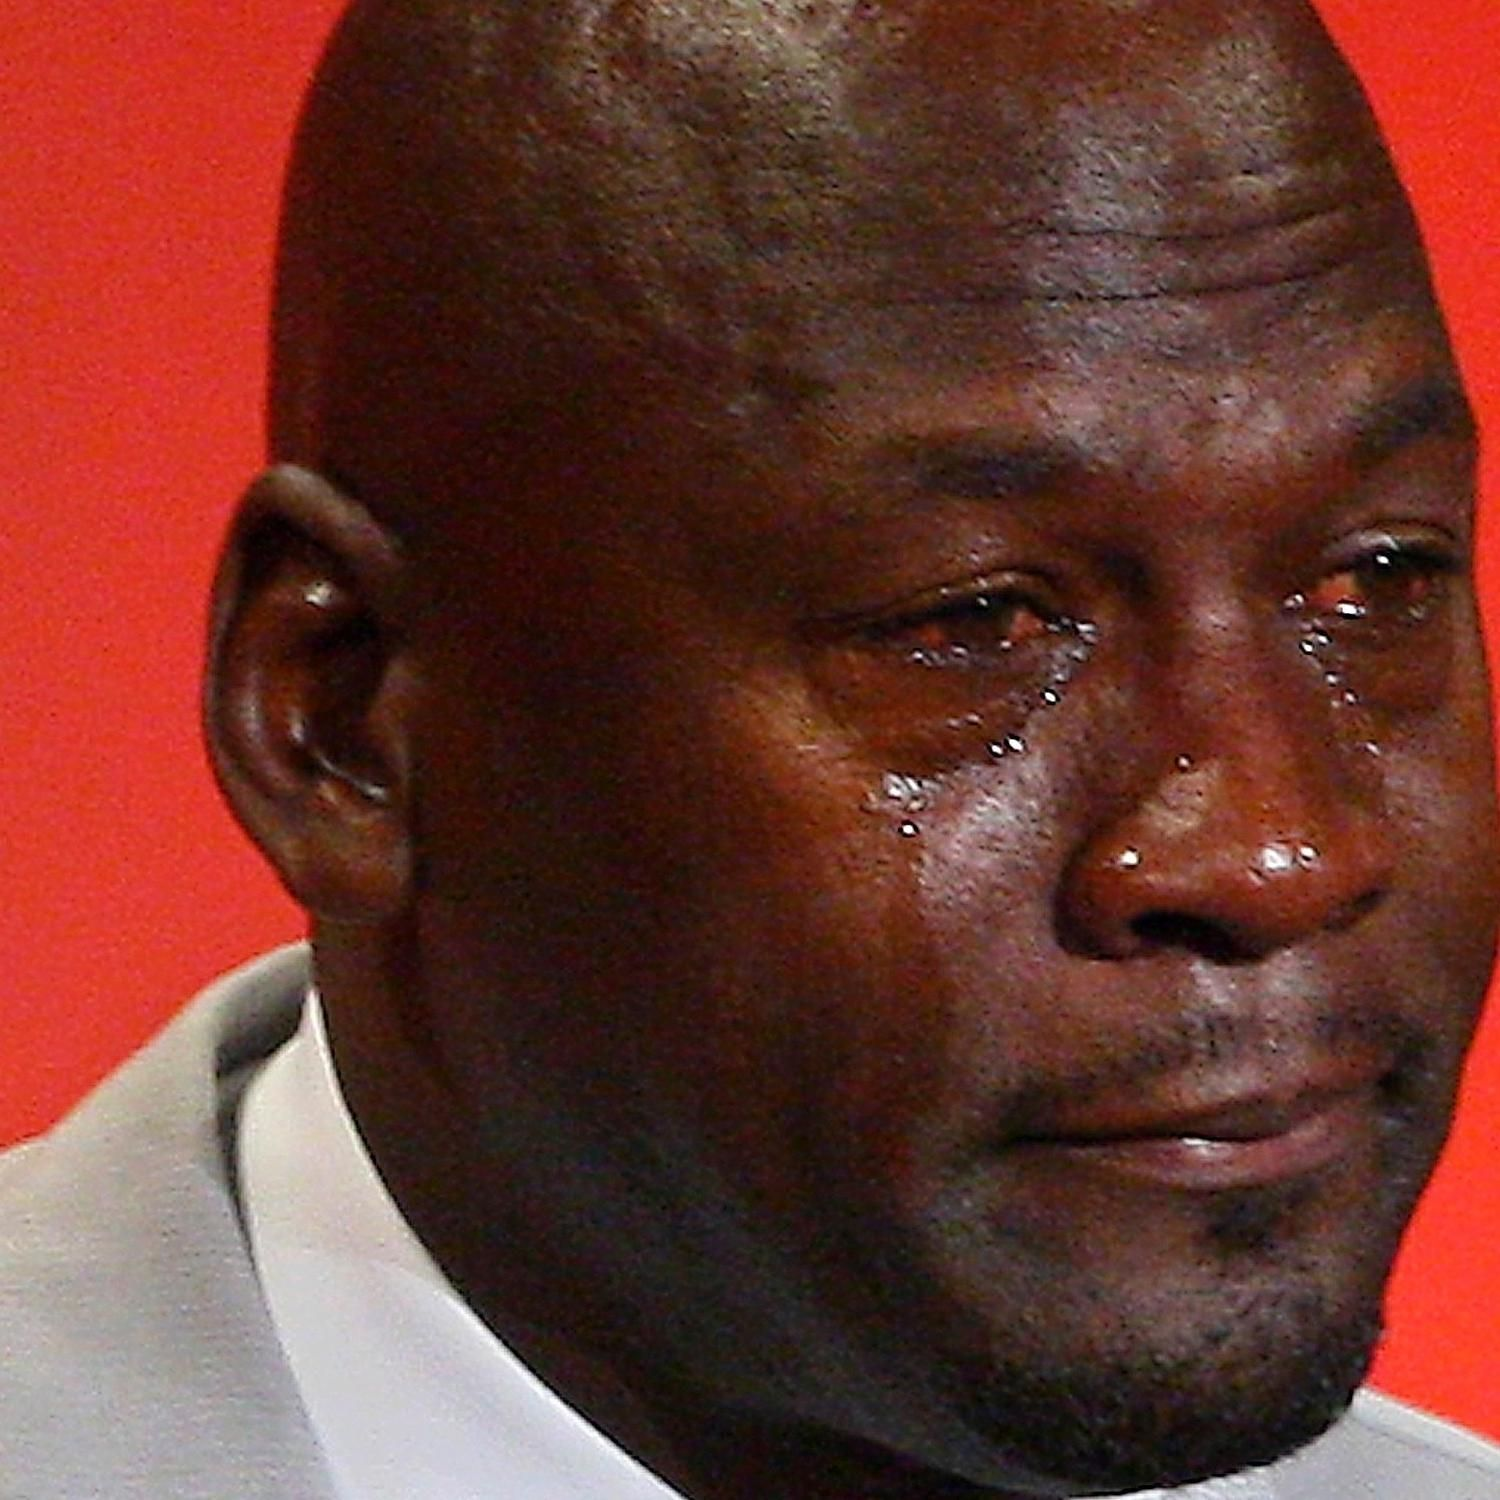 Photographer Stephan Savoia Refers To The Crying Jordan Meme As,